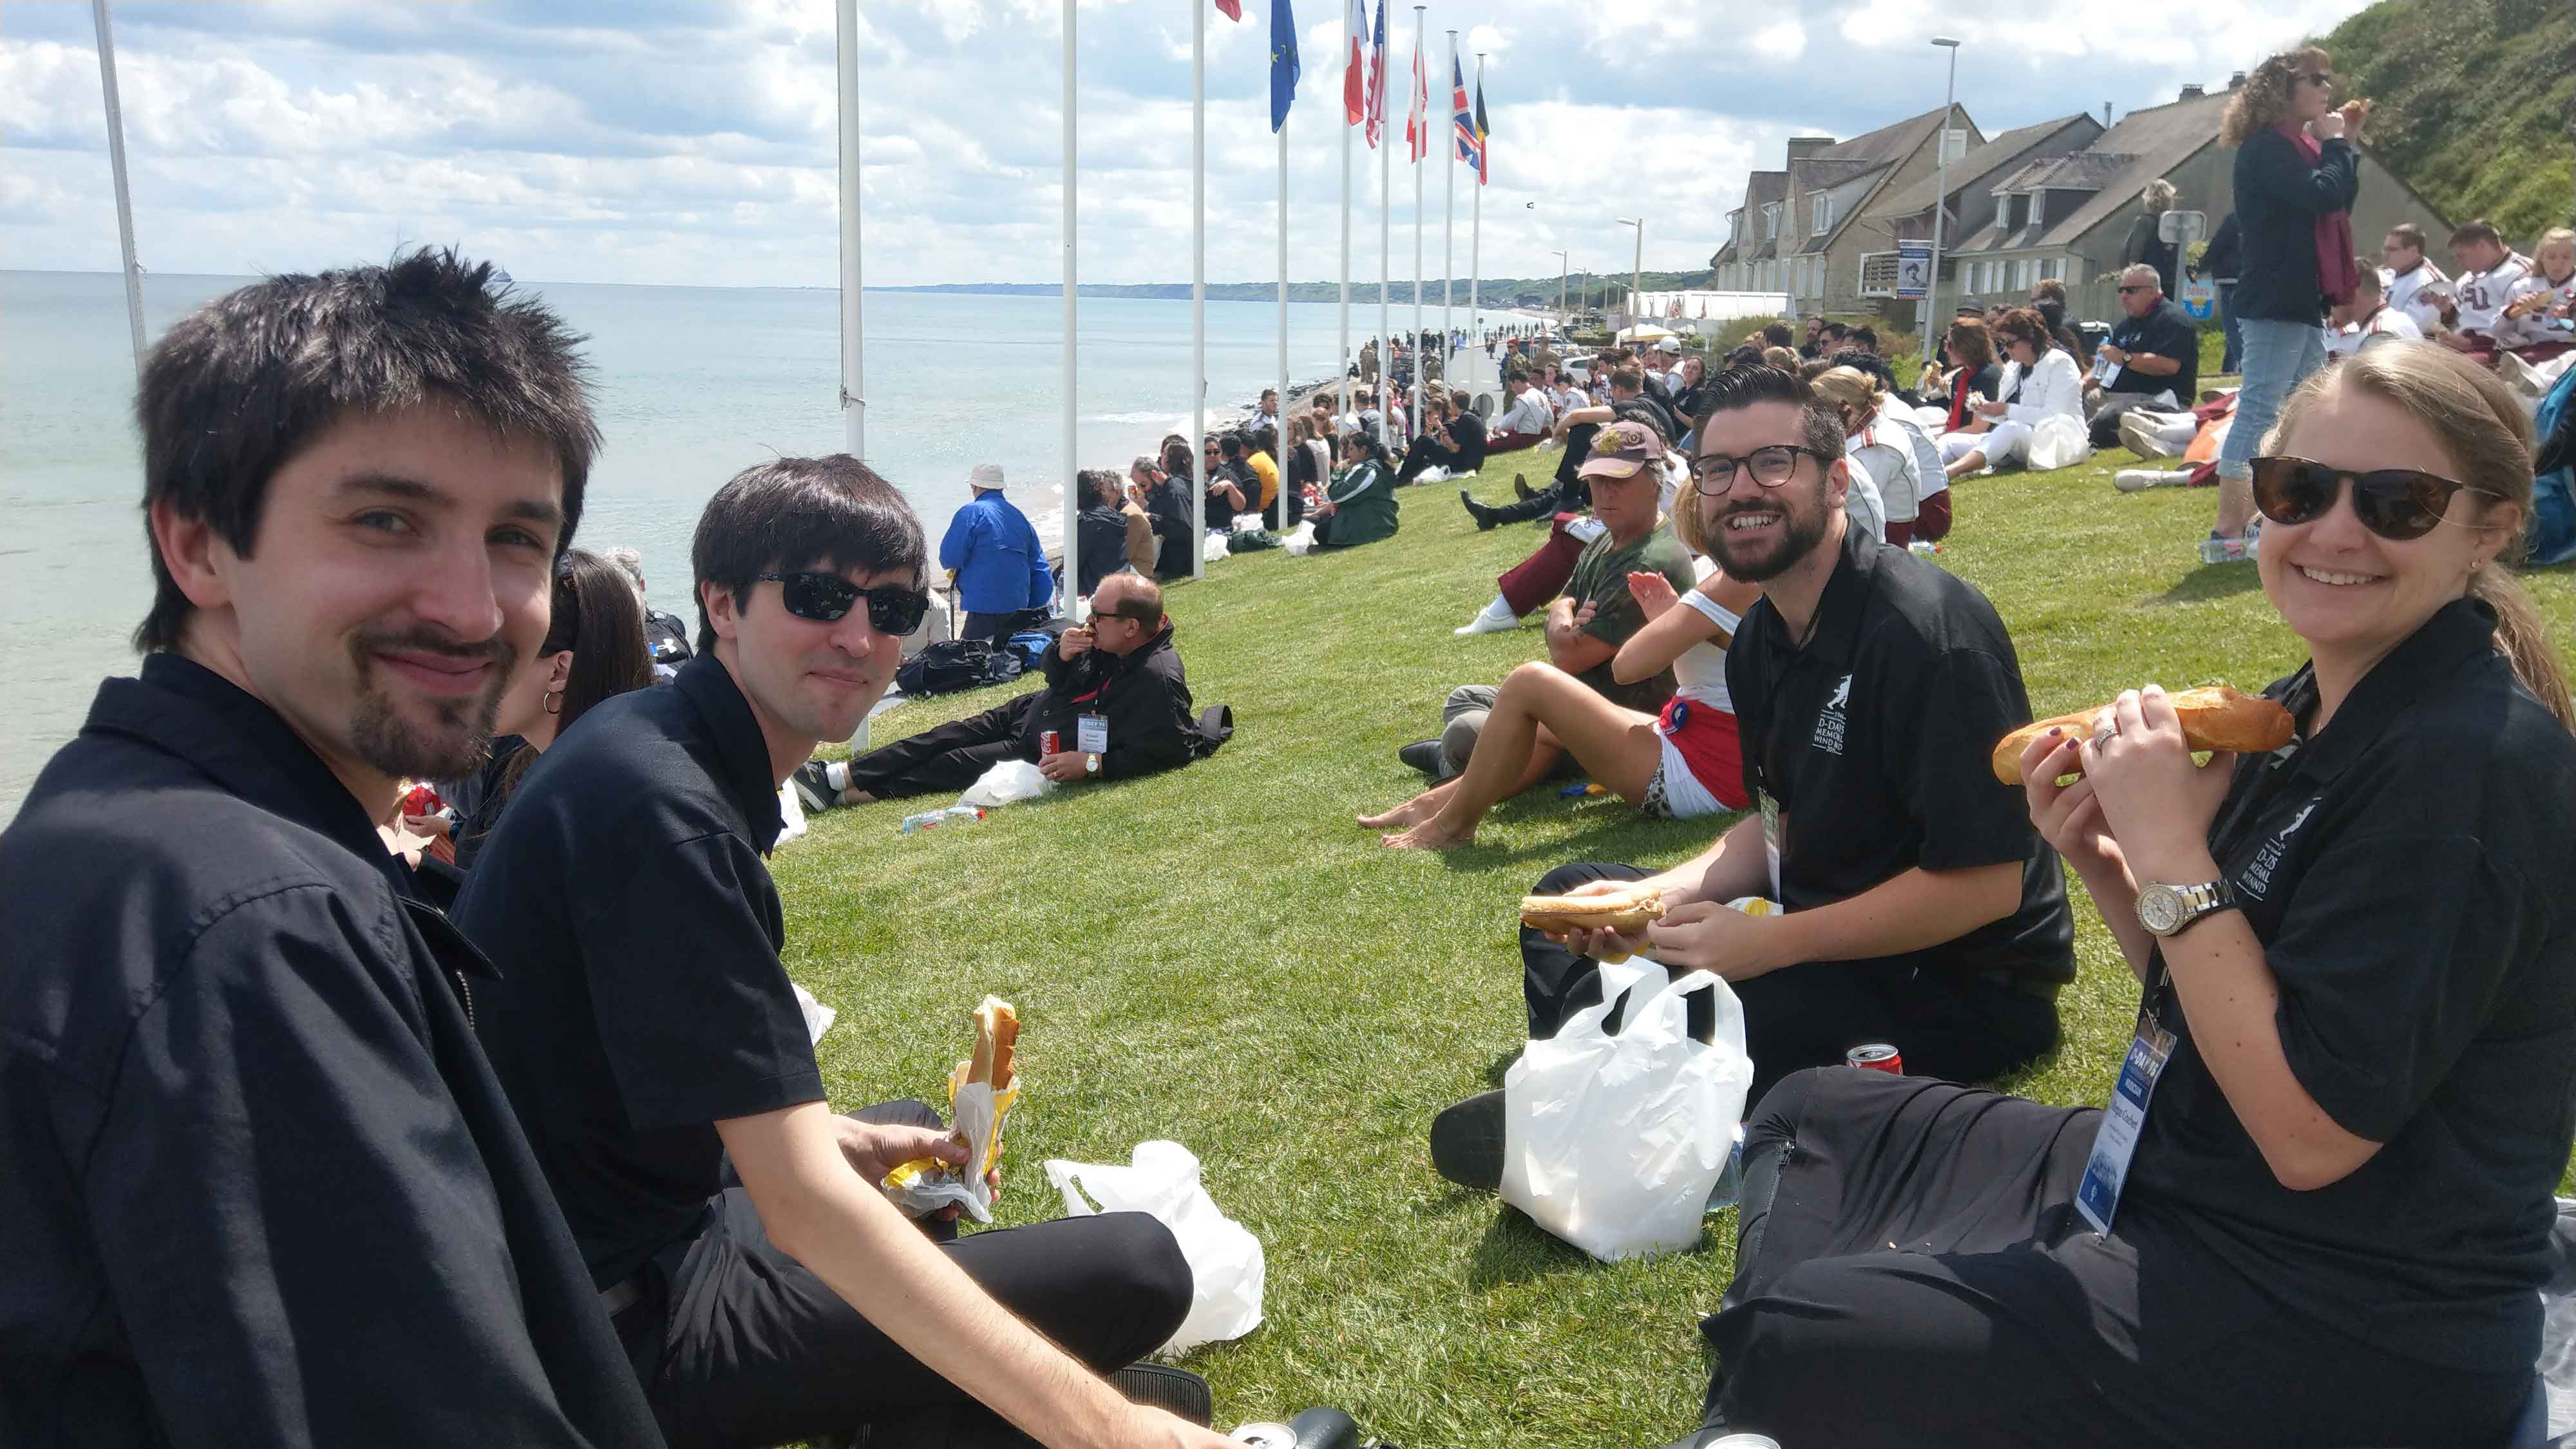 lunch at Omaha Beach ([pc: Jeff Held)